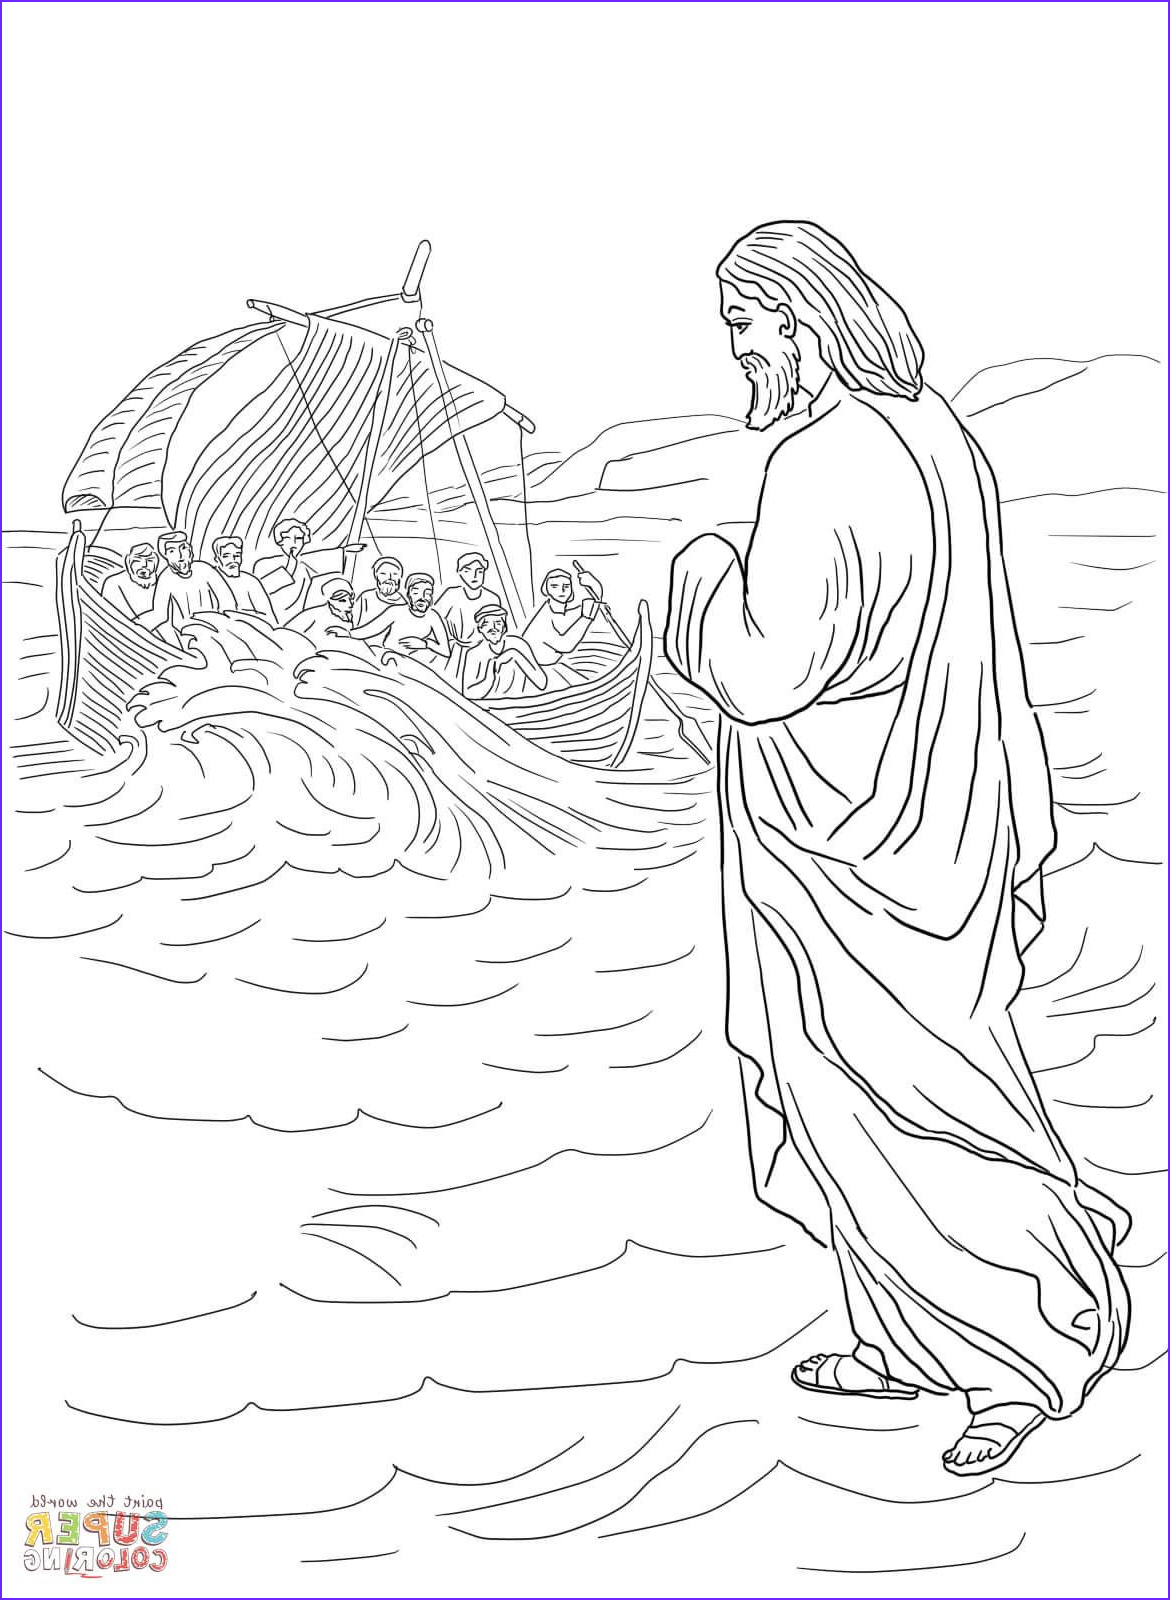 Water Coloring Book for Adults Elegant Photography Jesus Walking On the Water